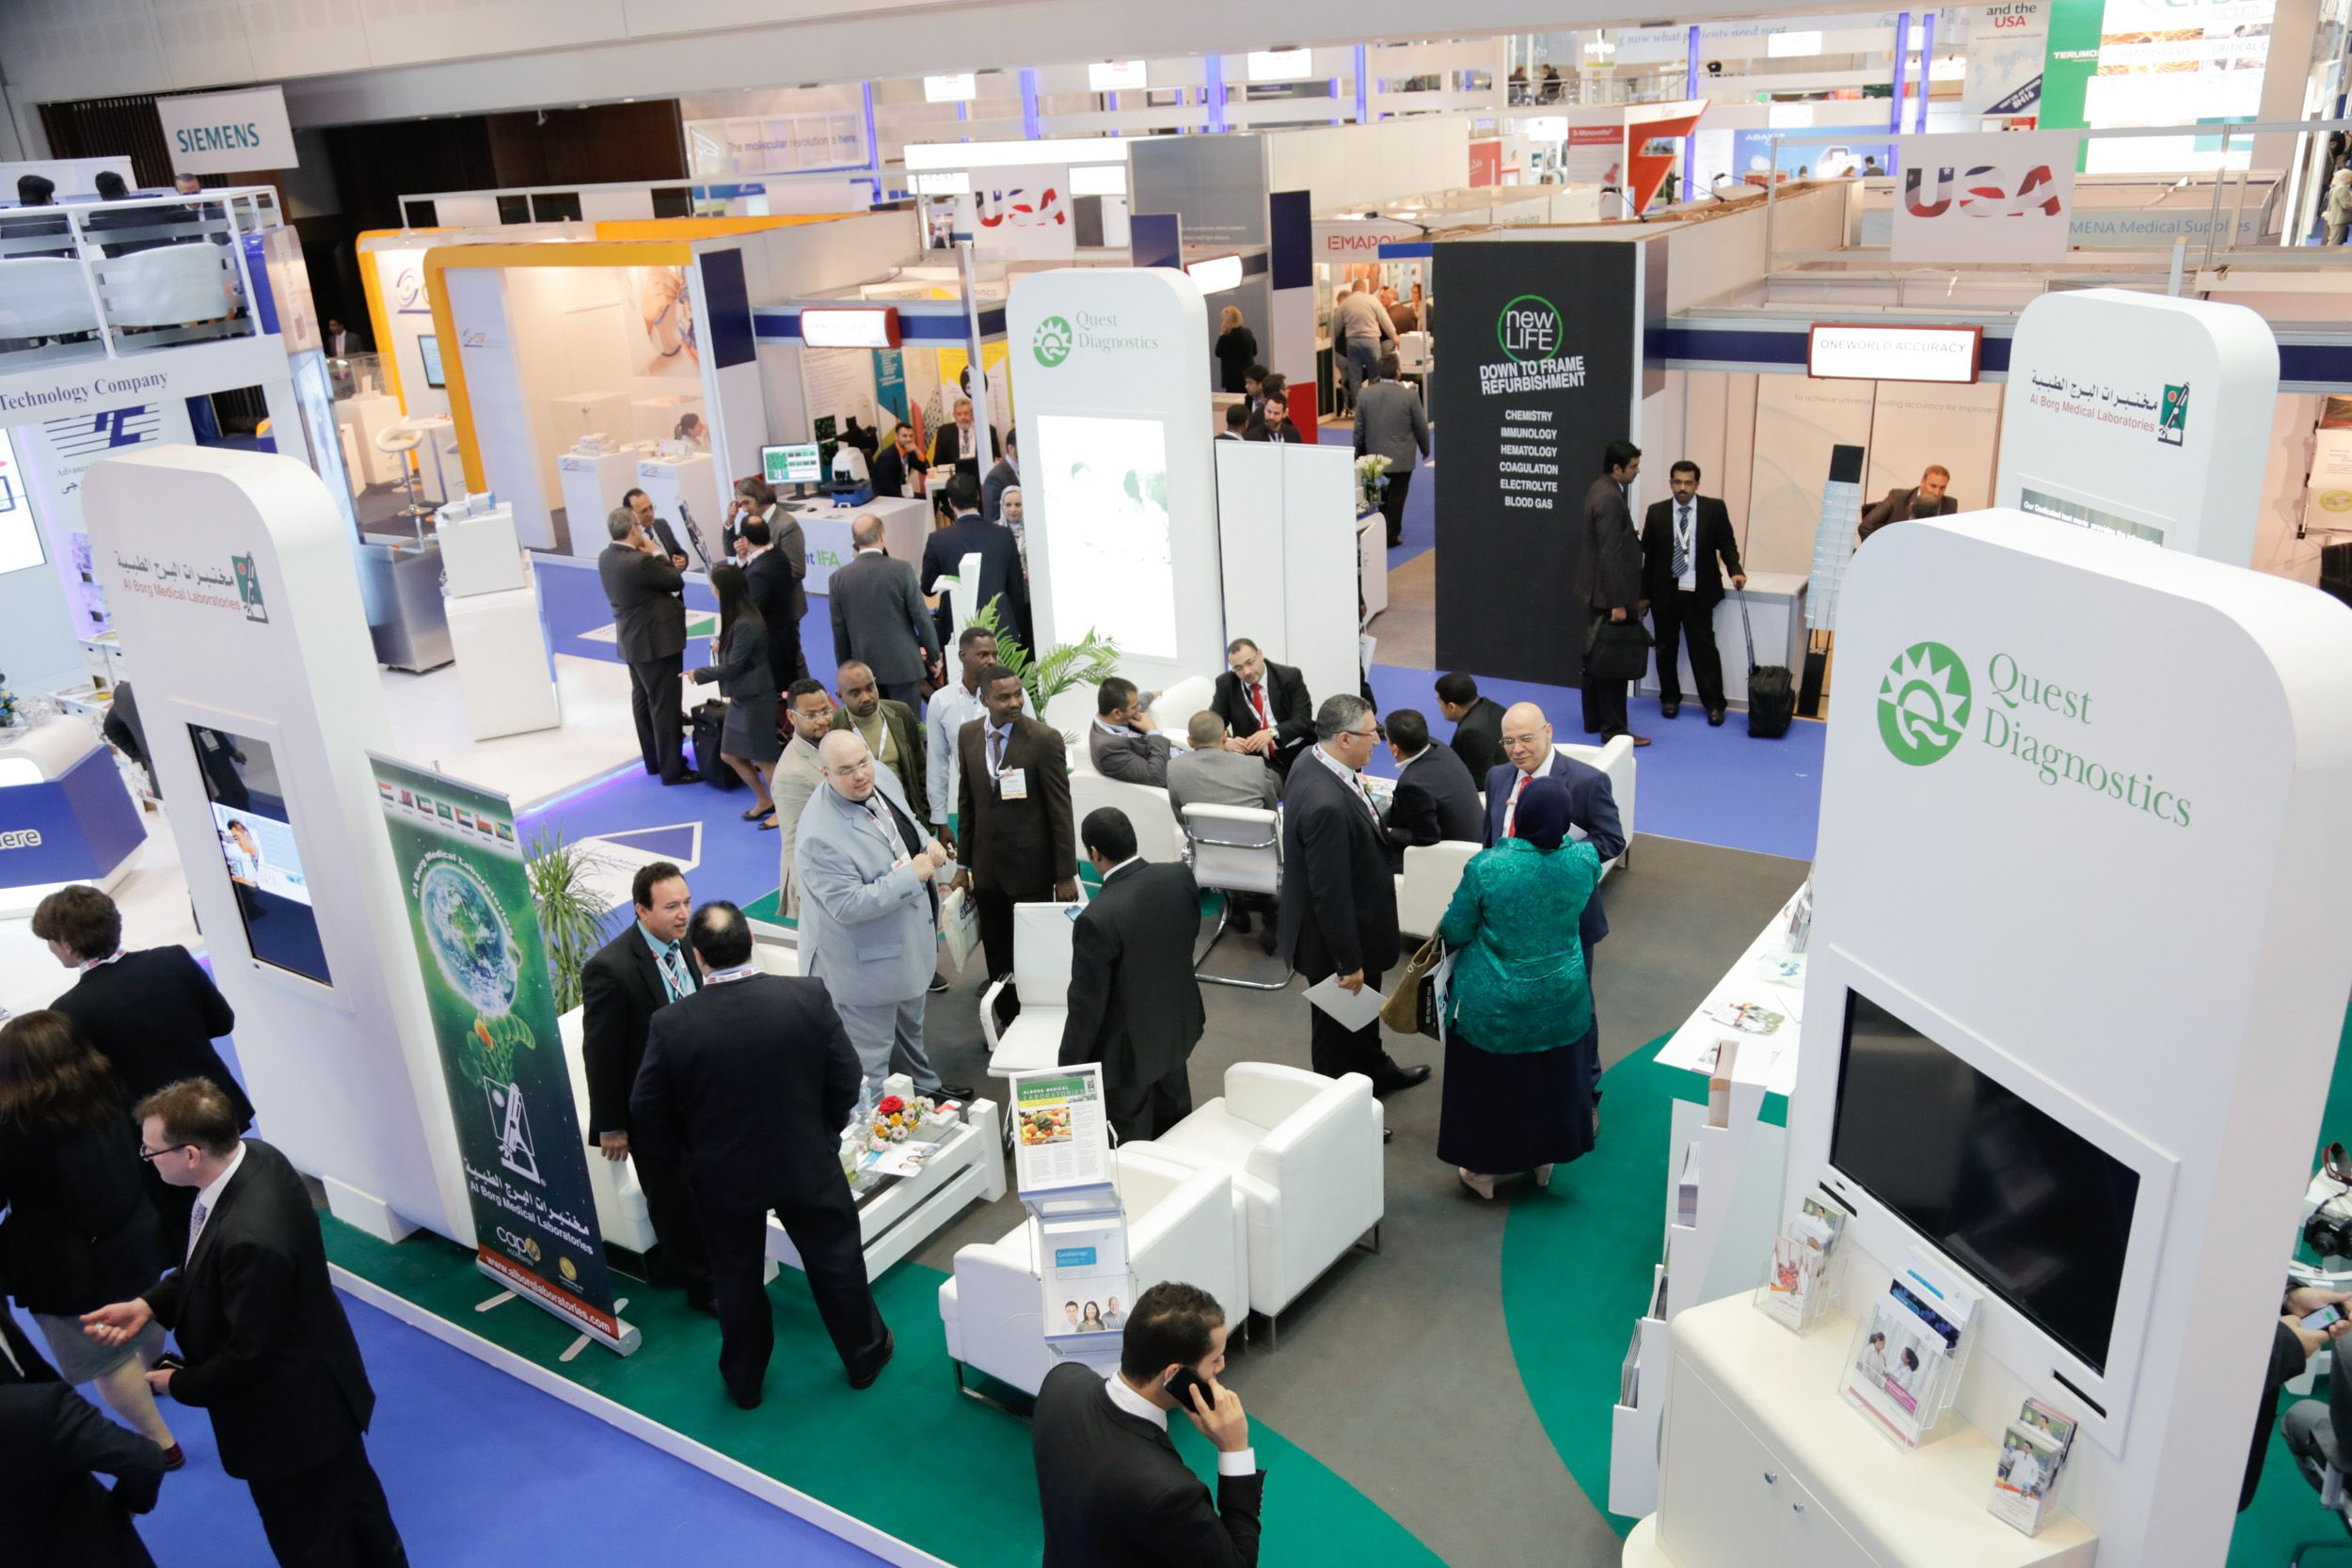 Arial view of the medlab exhibition during arab health